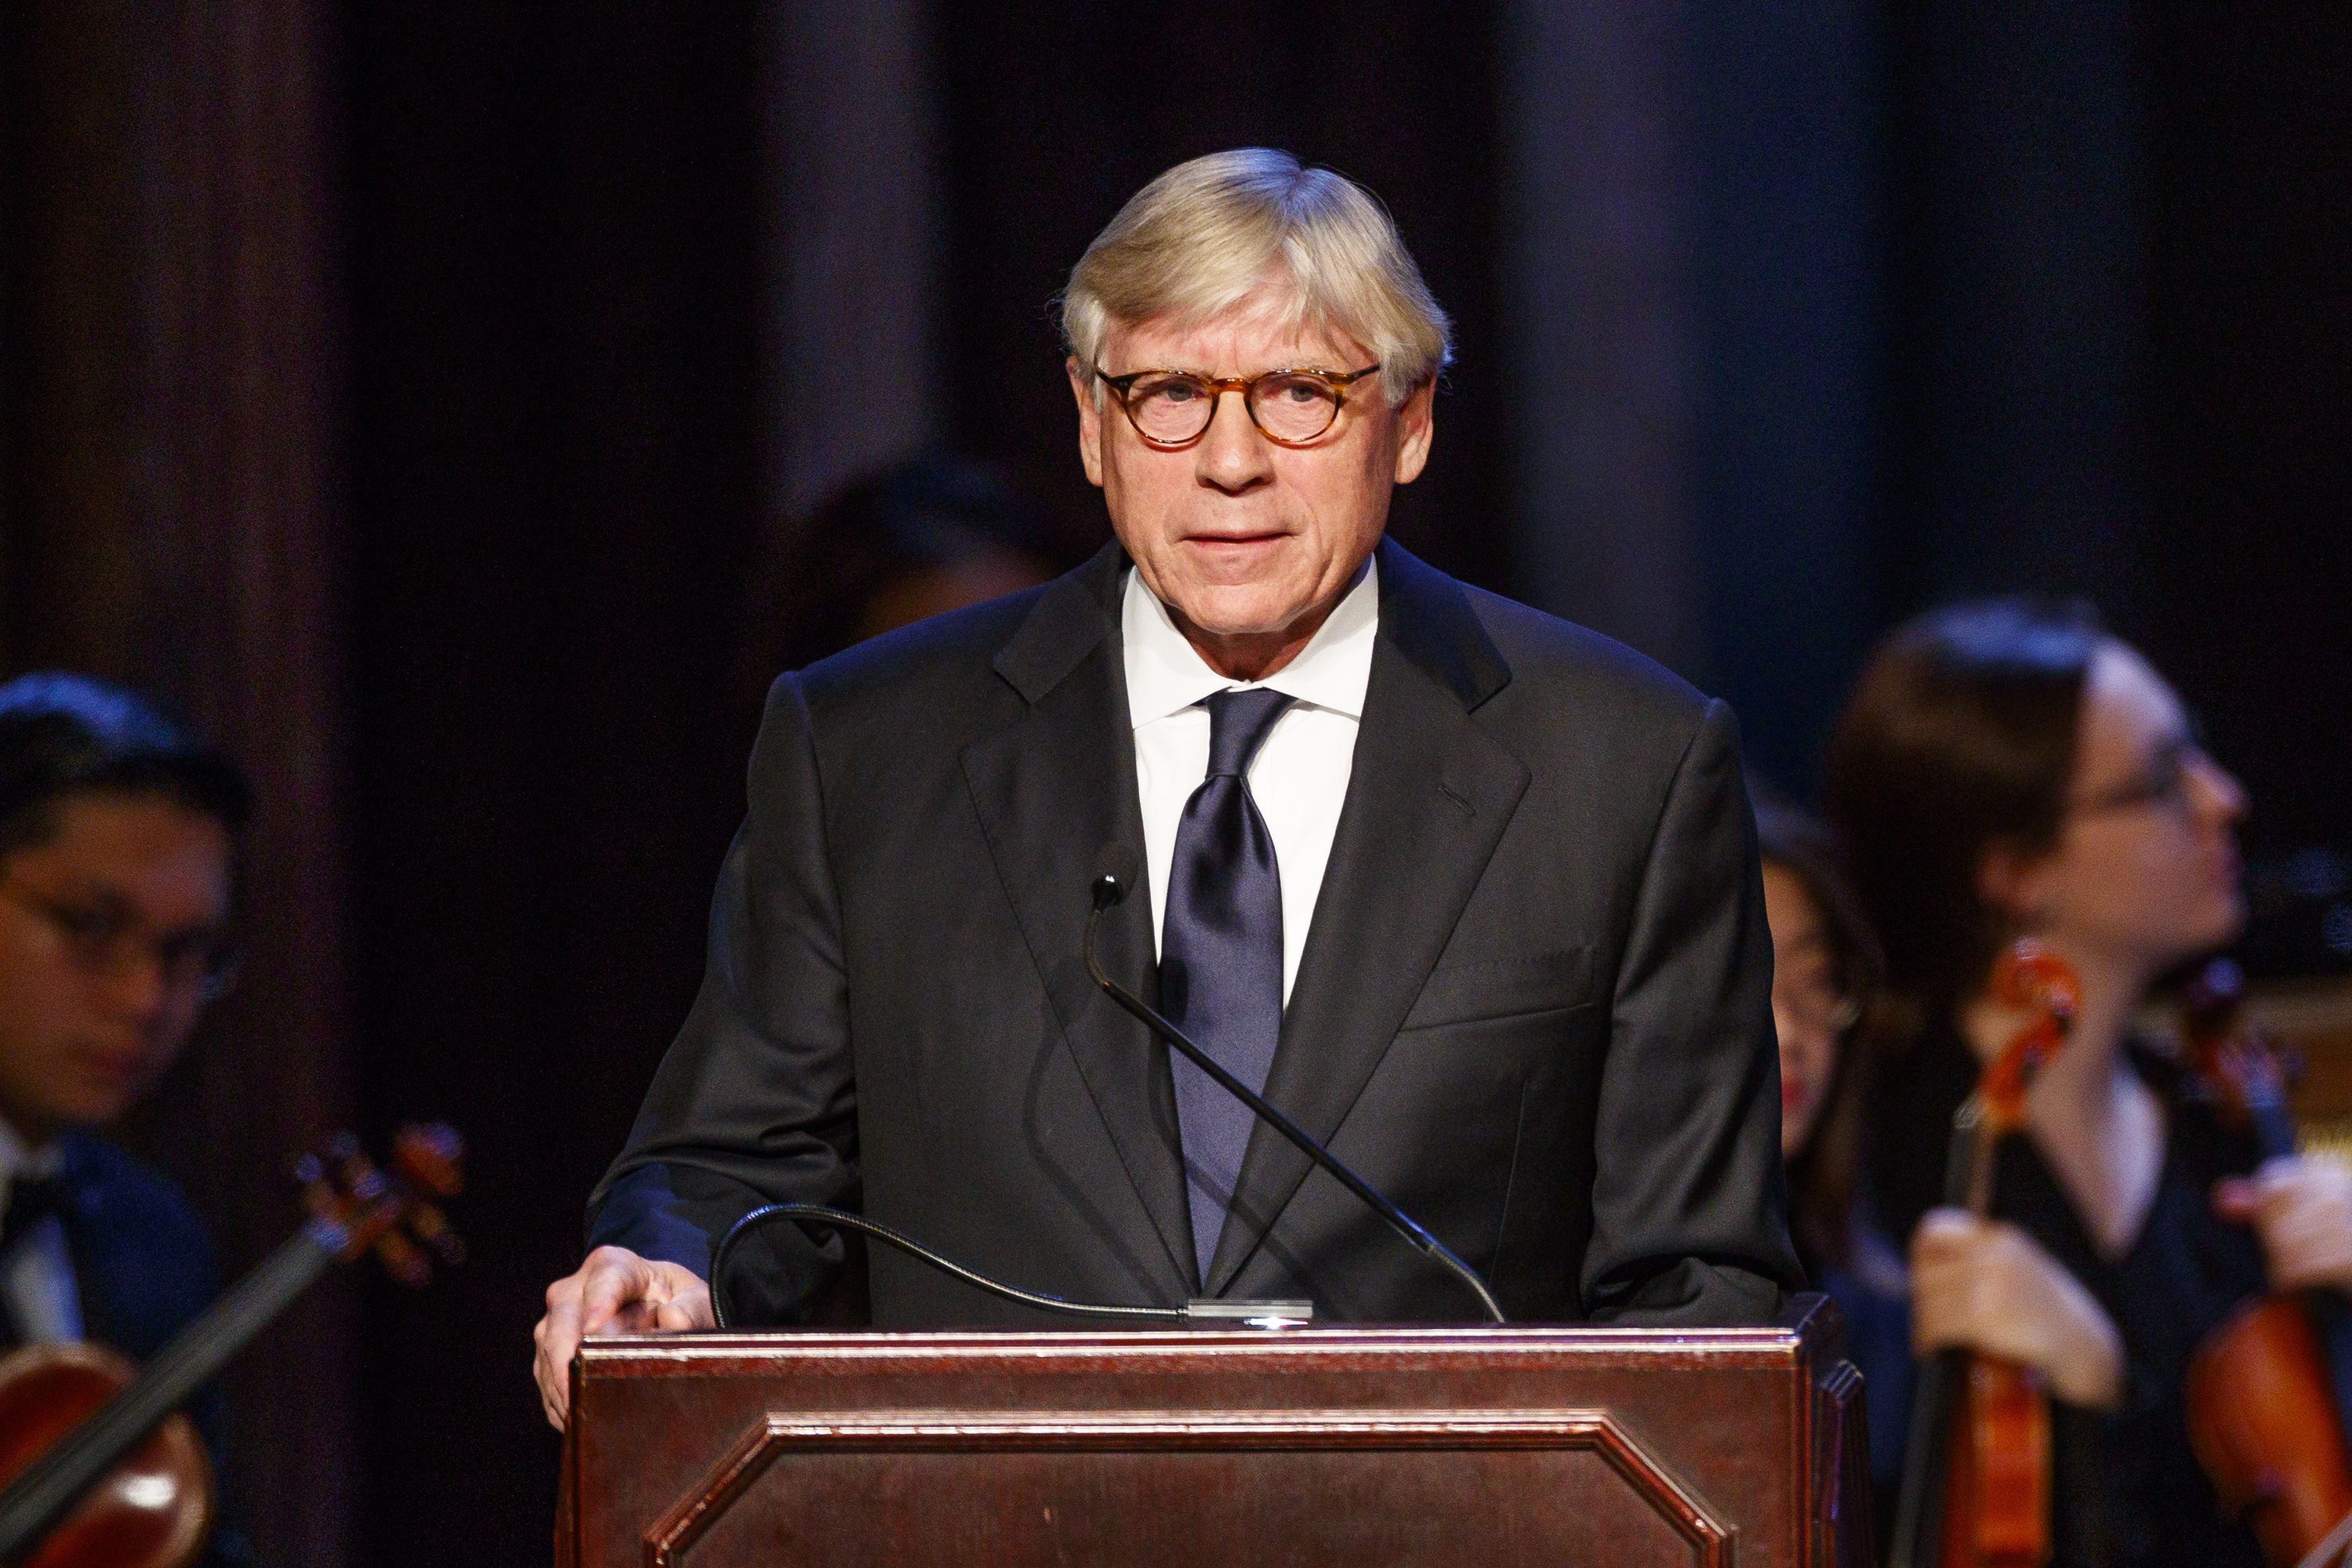 Lee Bollinger, President of Columbia University, speaks of the many gifts that Gerry Lenfest gave to the University during the memorial held at the Academy of Music on Octoebr 17, 2018.